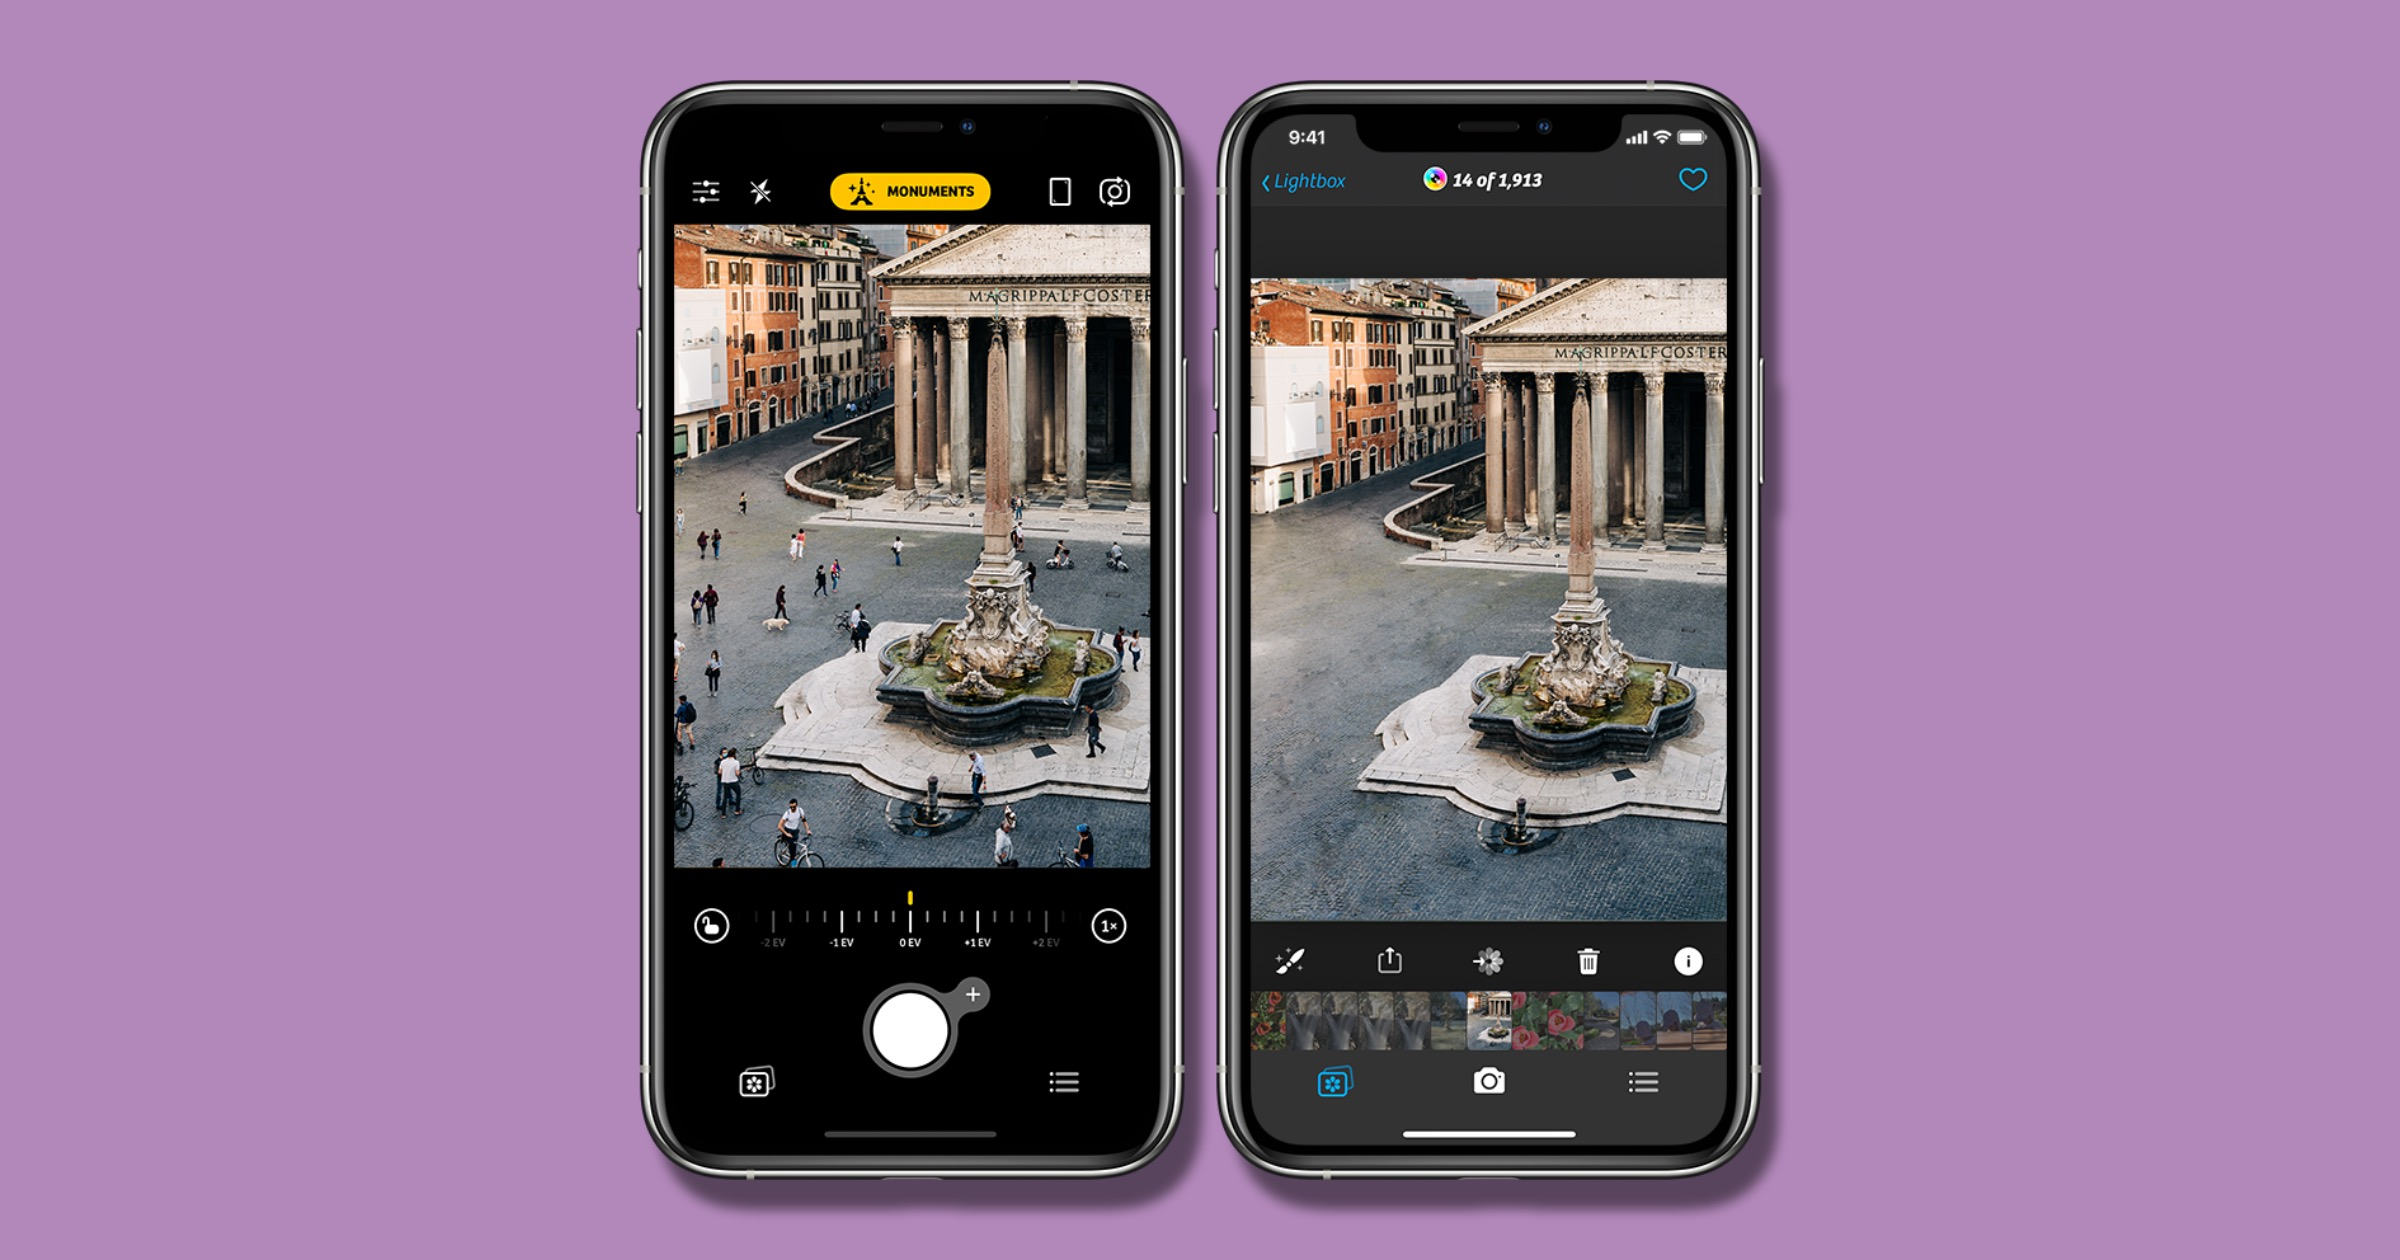 Camera+ 2 Adds AI-Powered Monuments Mode